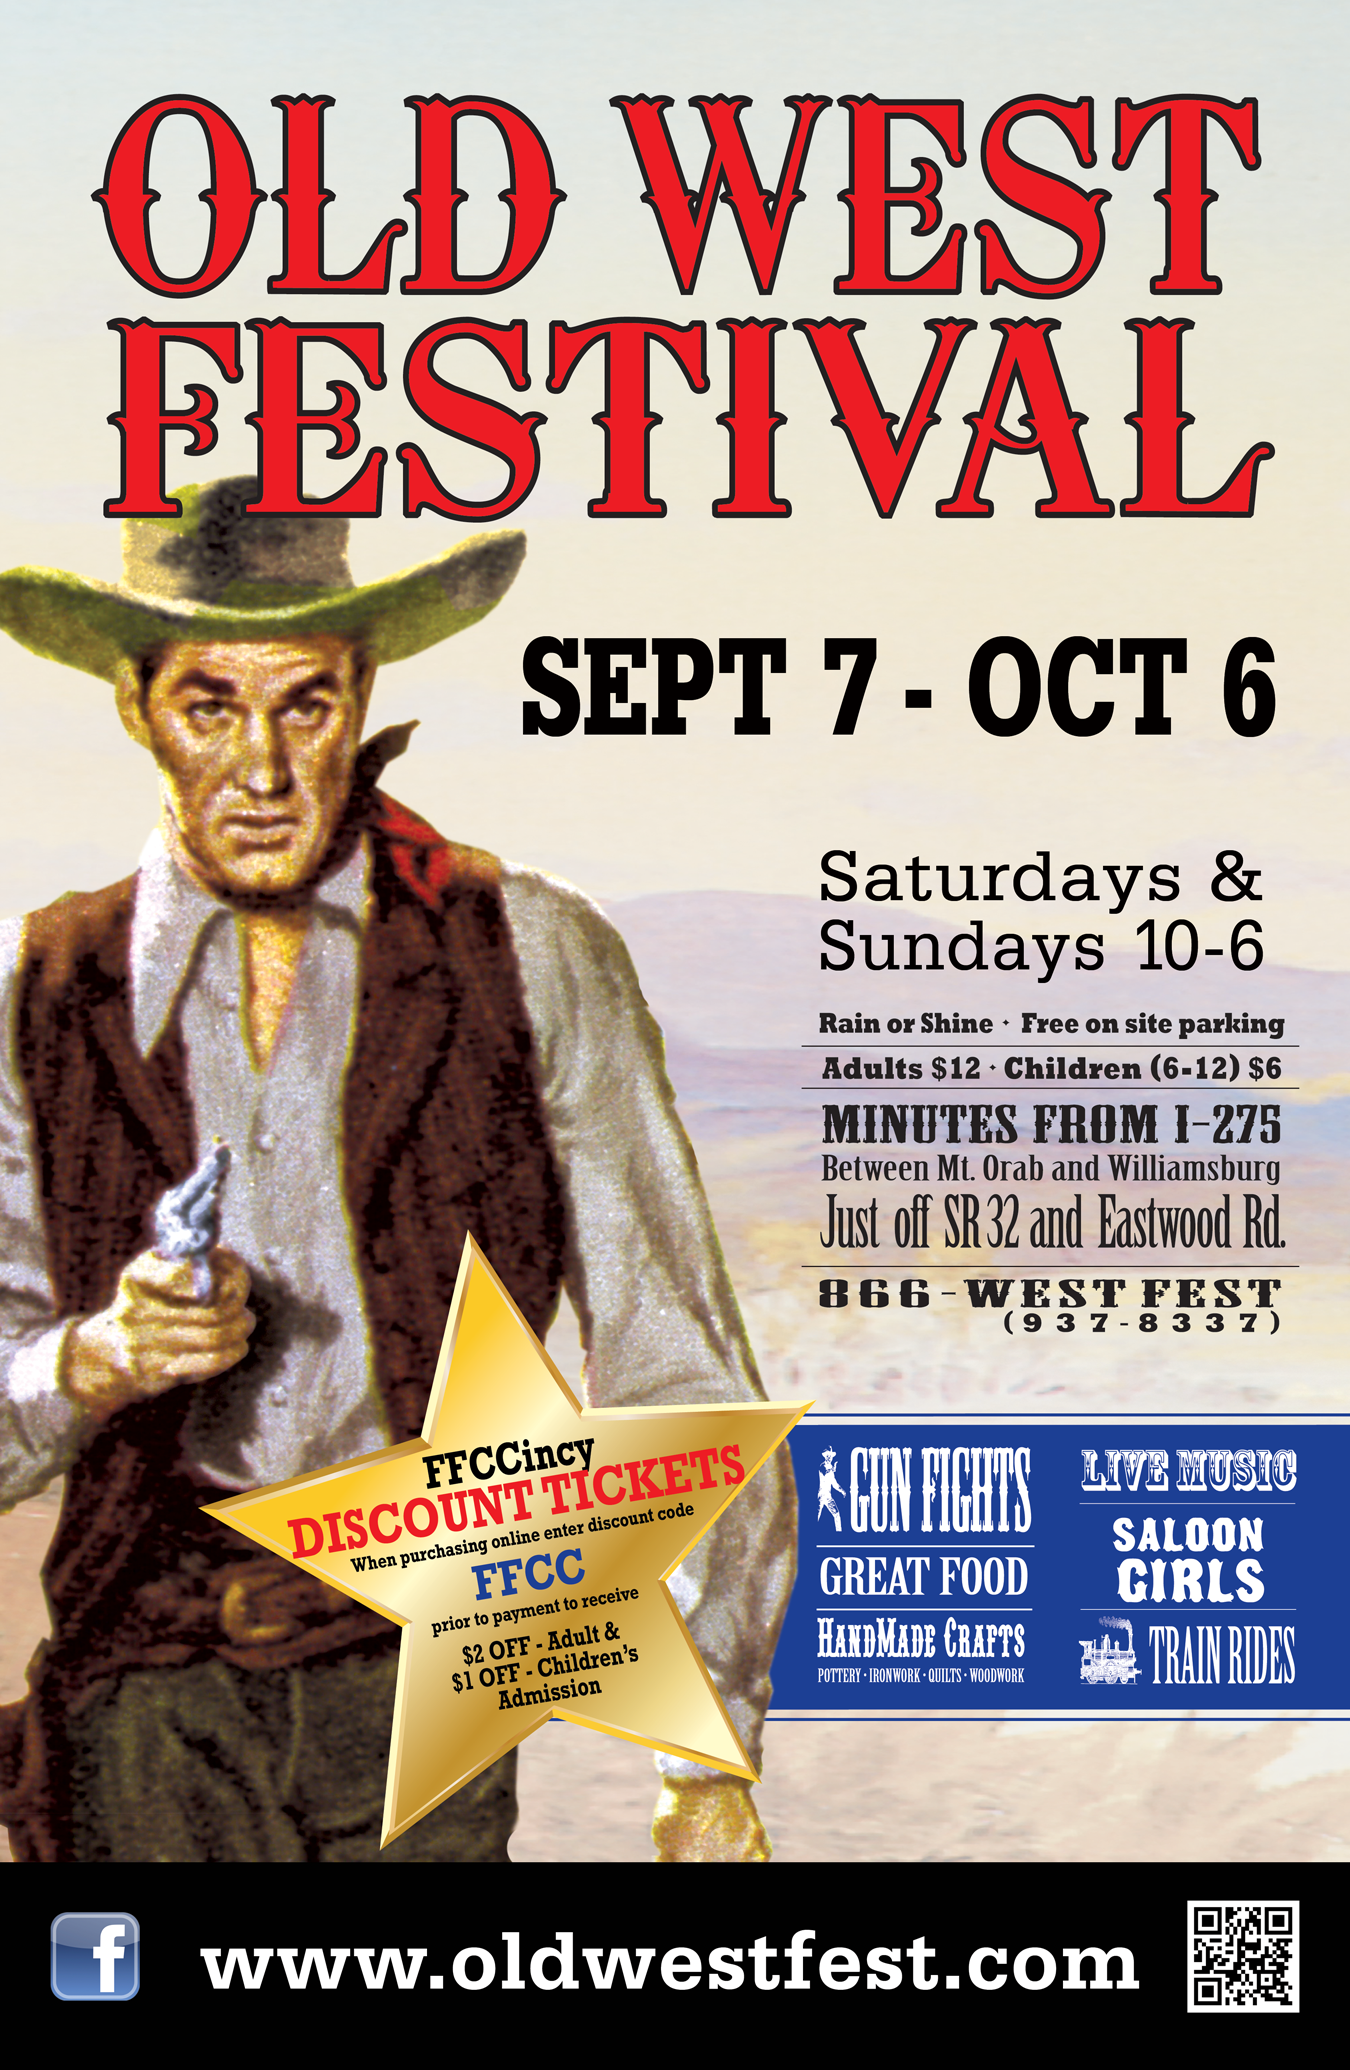 Old West Festival Discount